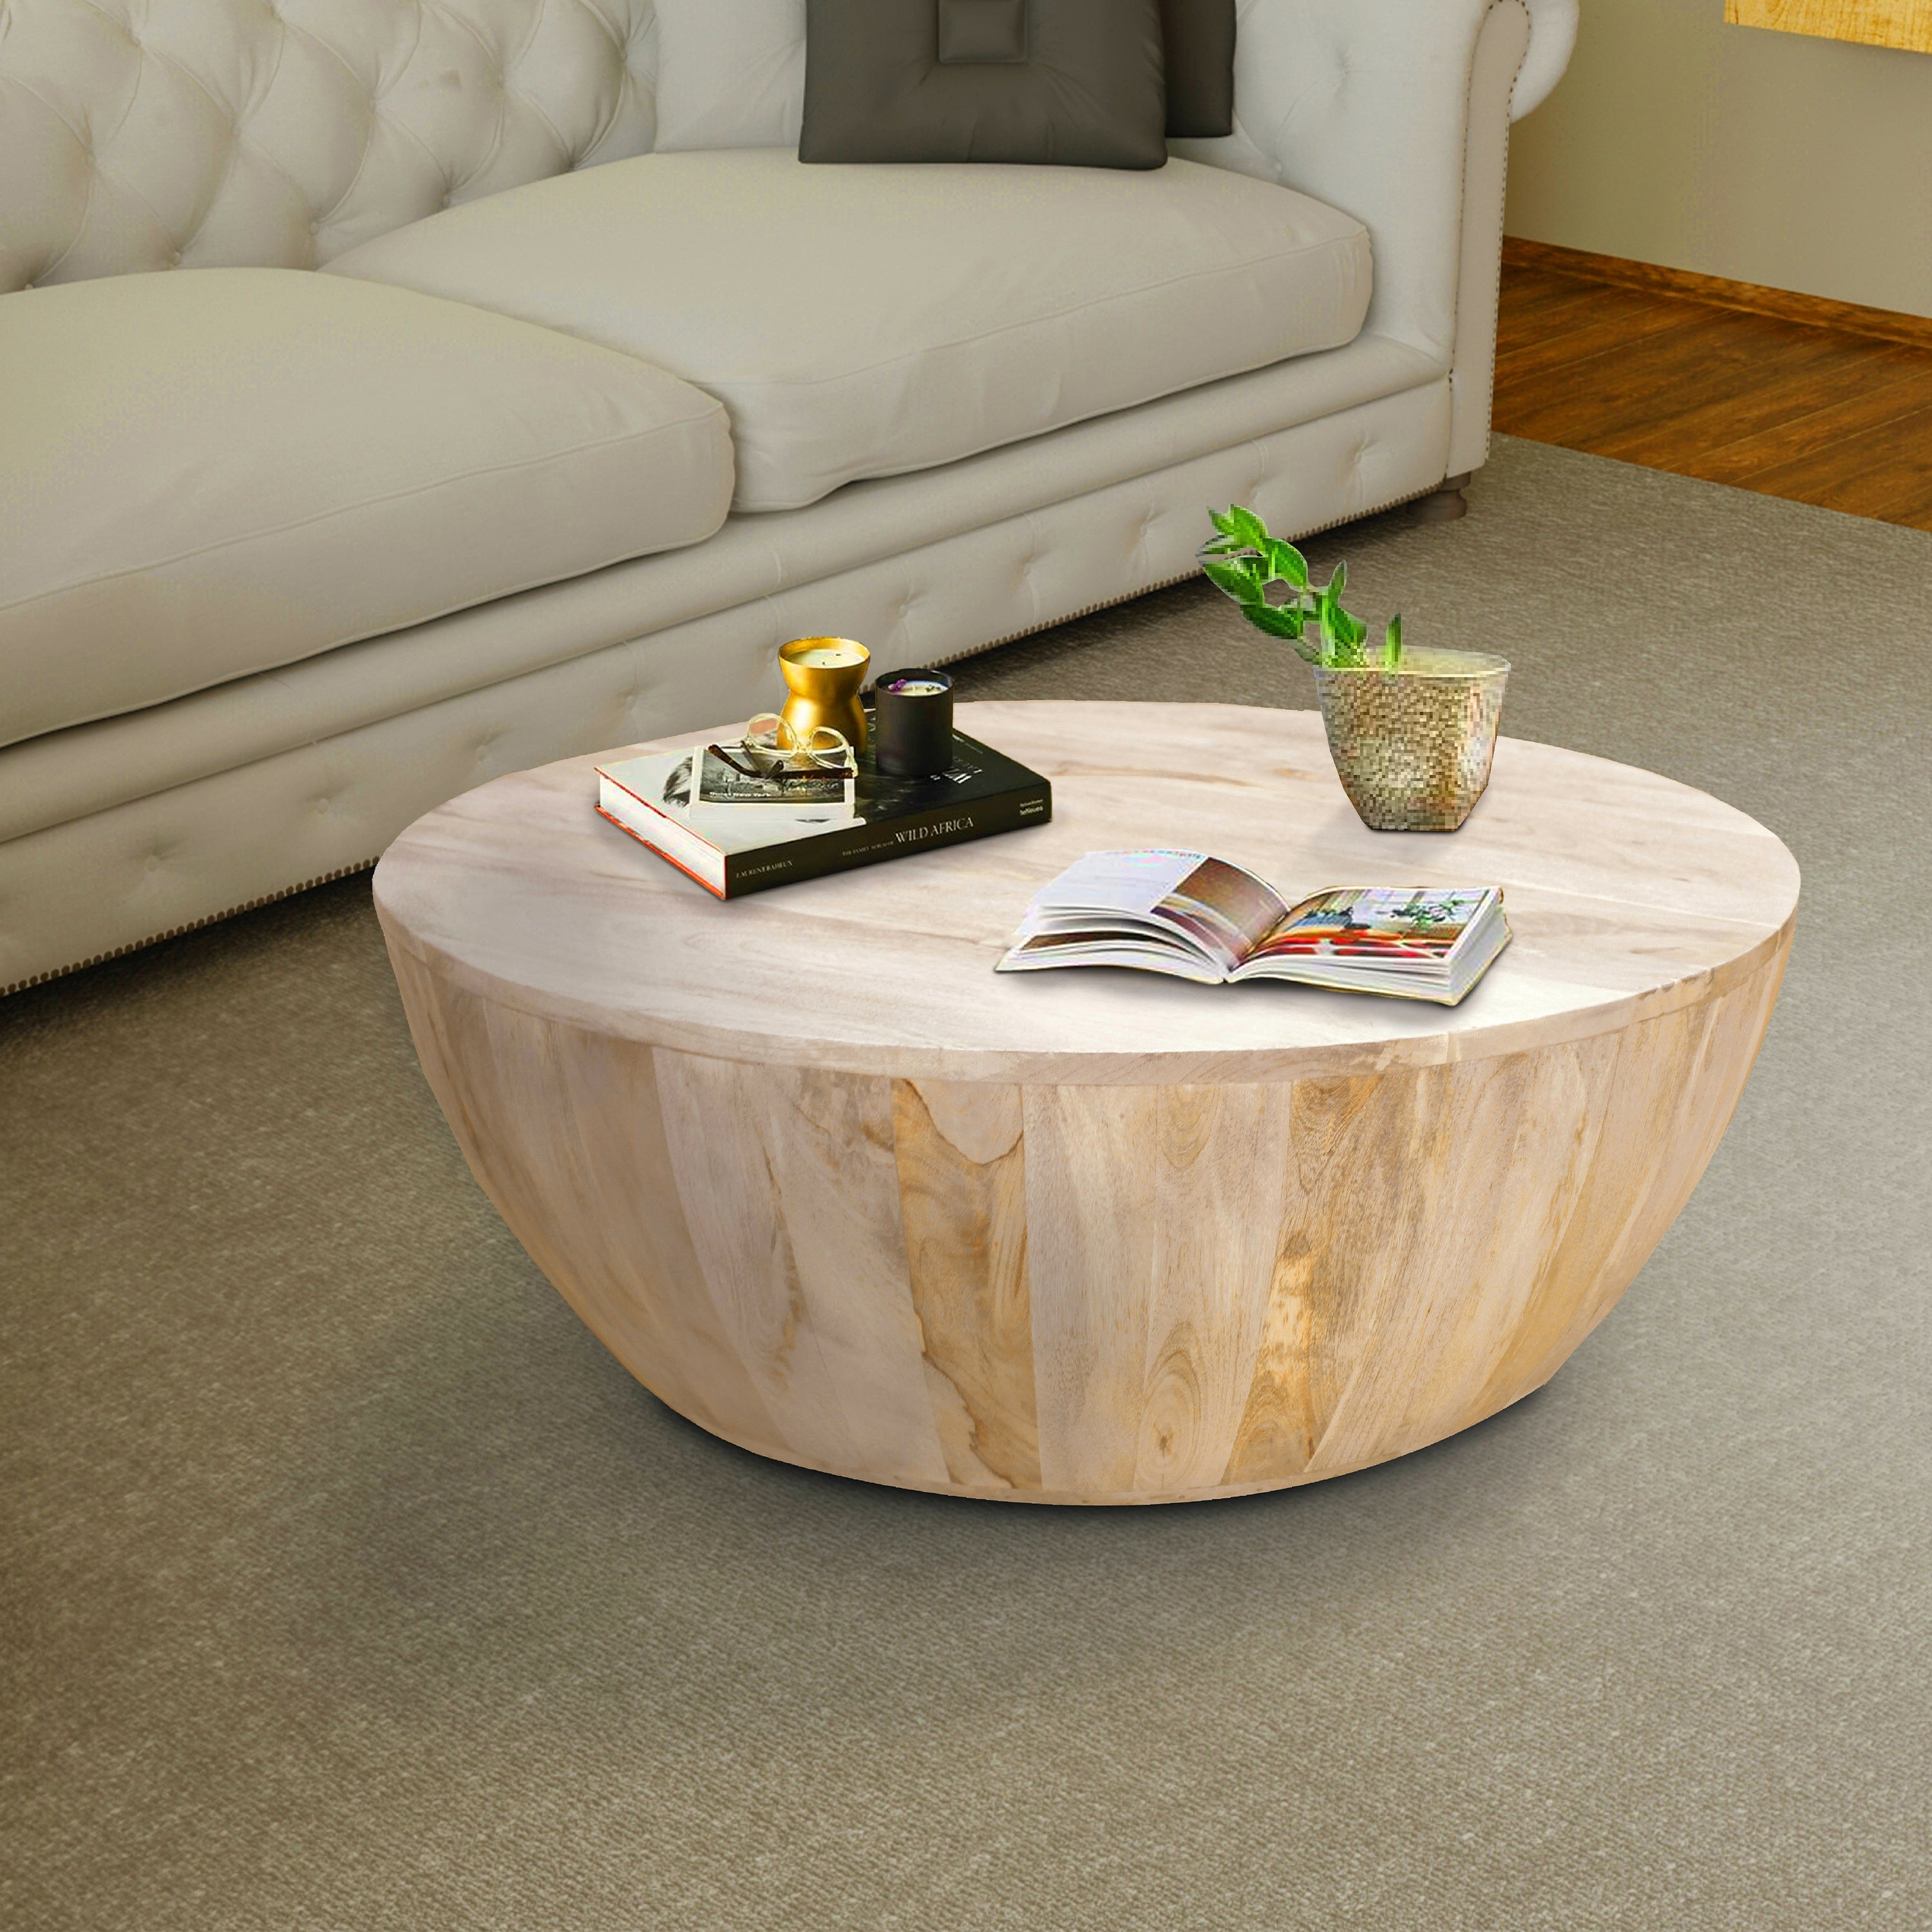 - Shop Distressed Mango Wood Round Coffee Table - Overstock - 27296417